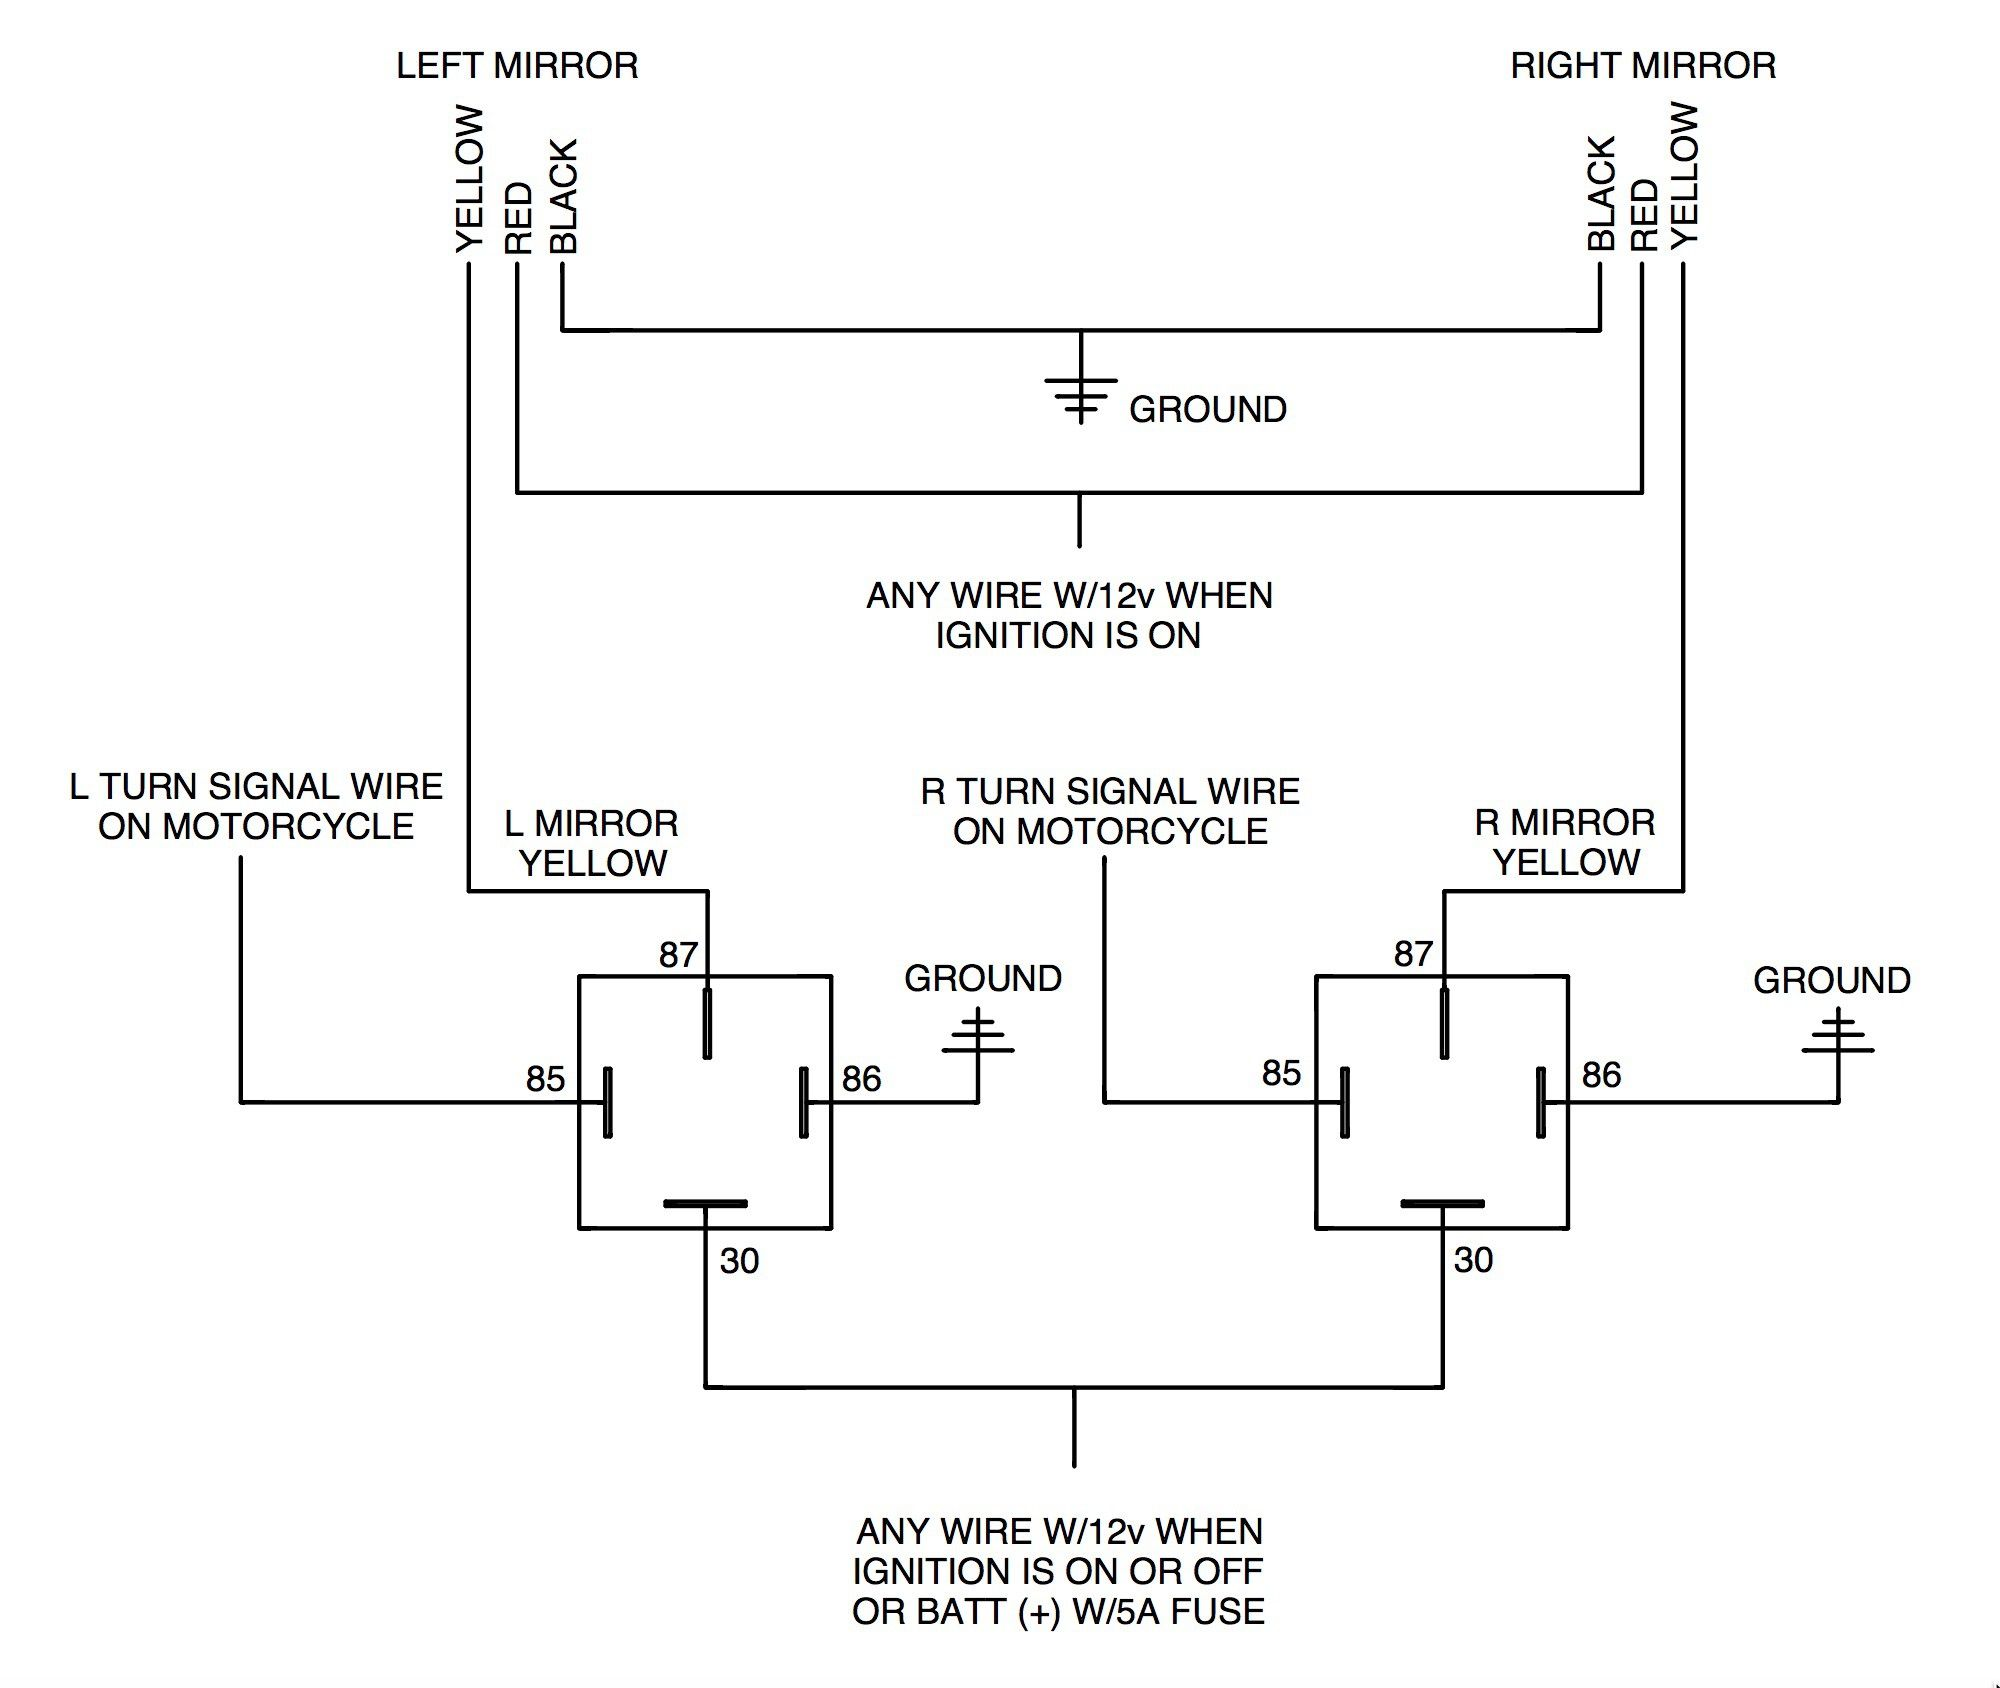 12v Relay Wiring Diagram 5 Pin Awesome Cute Standard Relay Wiring Hazard Lights Navigation Lights Diagram